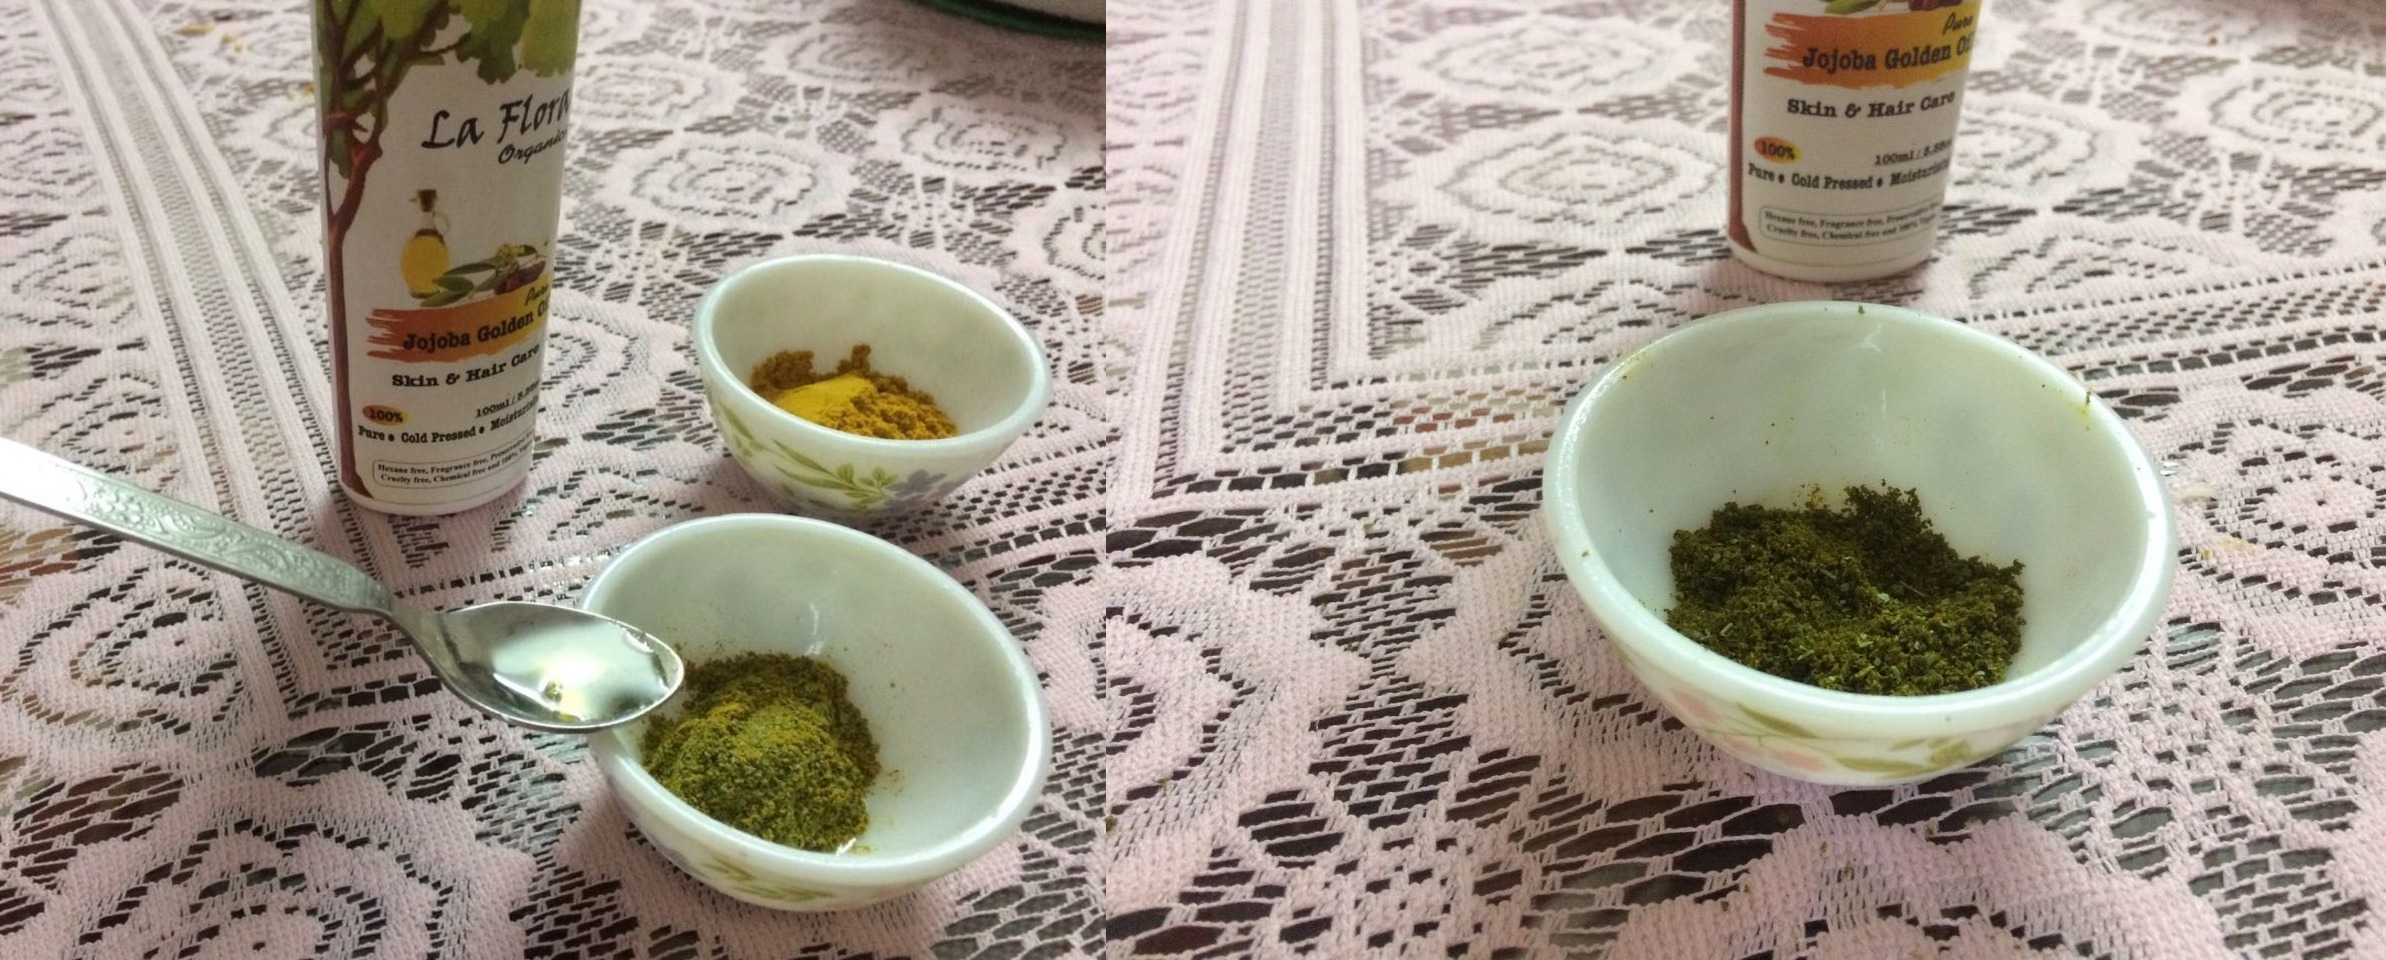 Curry leaves with turmeric and jojoba oil for preparing herbal mix to treat acne